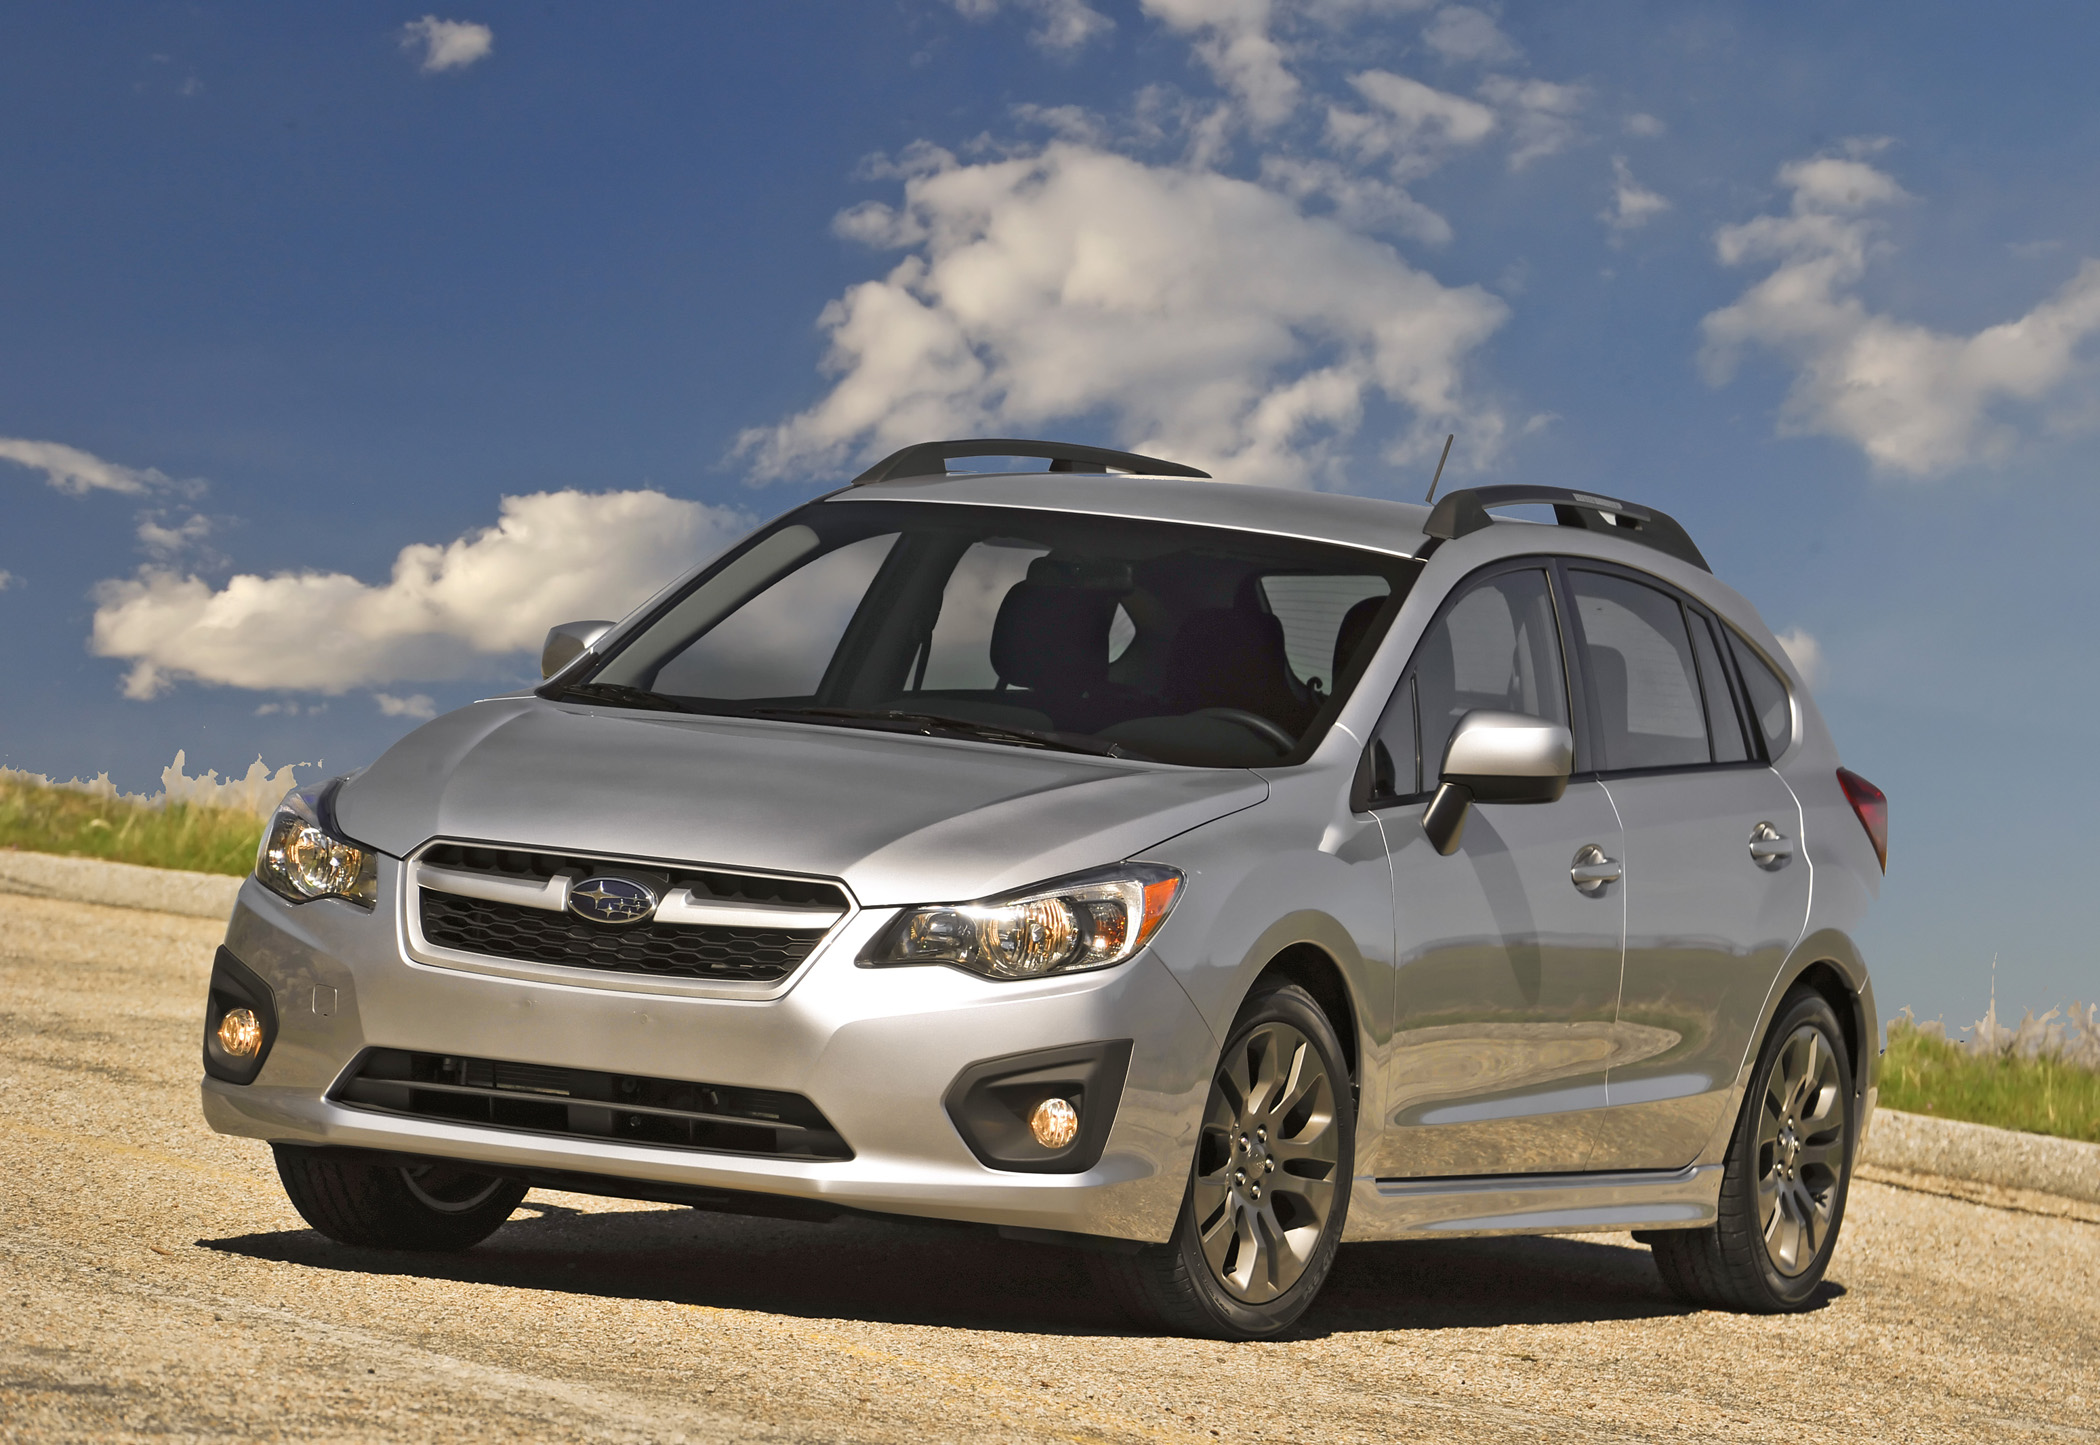 2012 subaru impreza most efficient awd car in america new on wheels groovecar. Black Bedroom Furniture Sets. Home Design Ideas